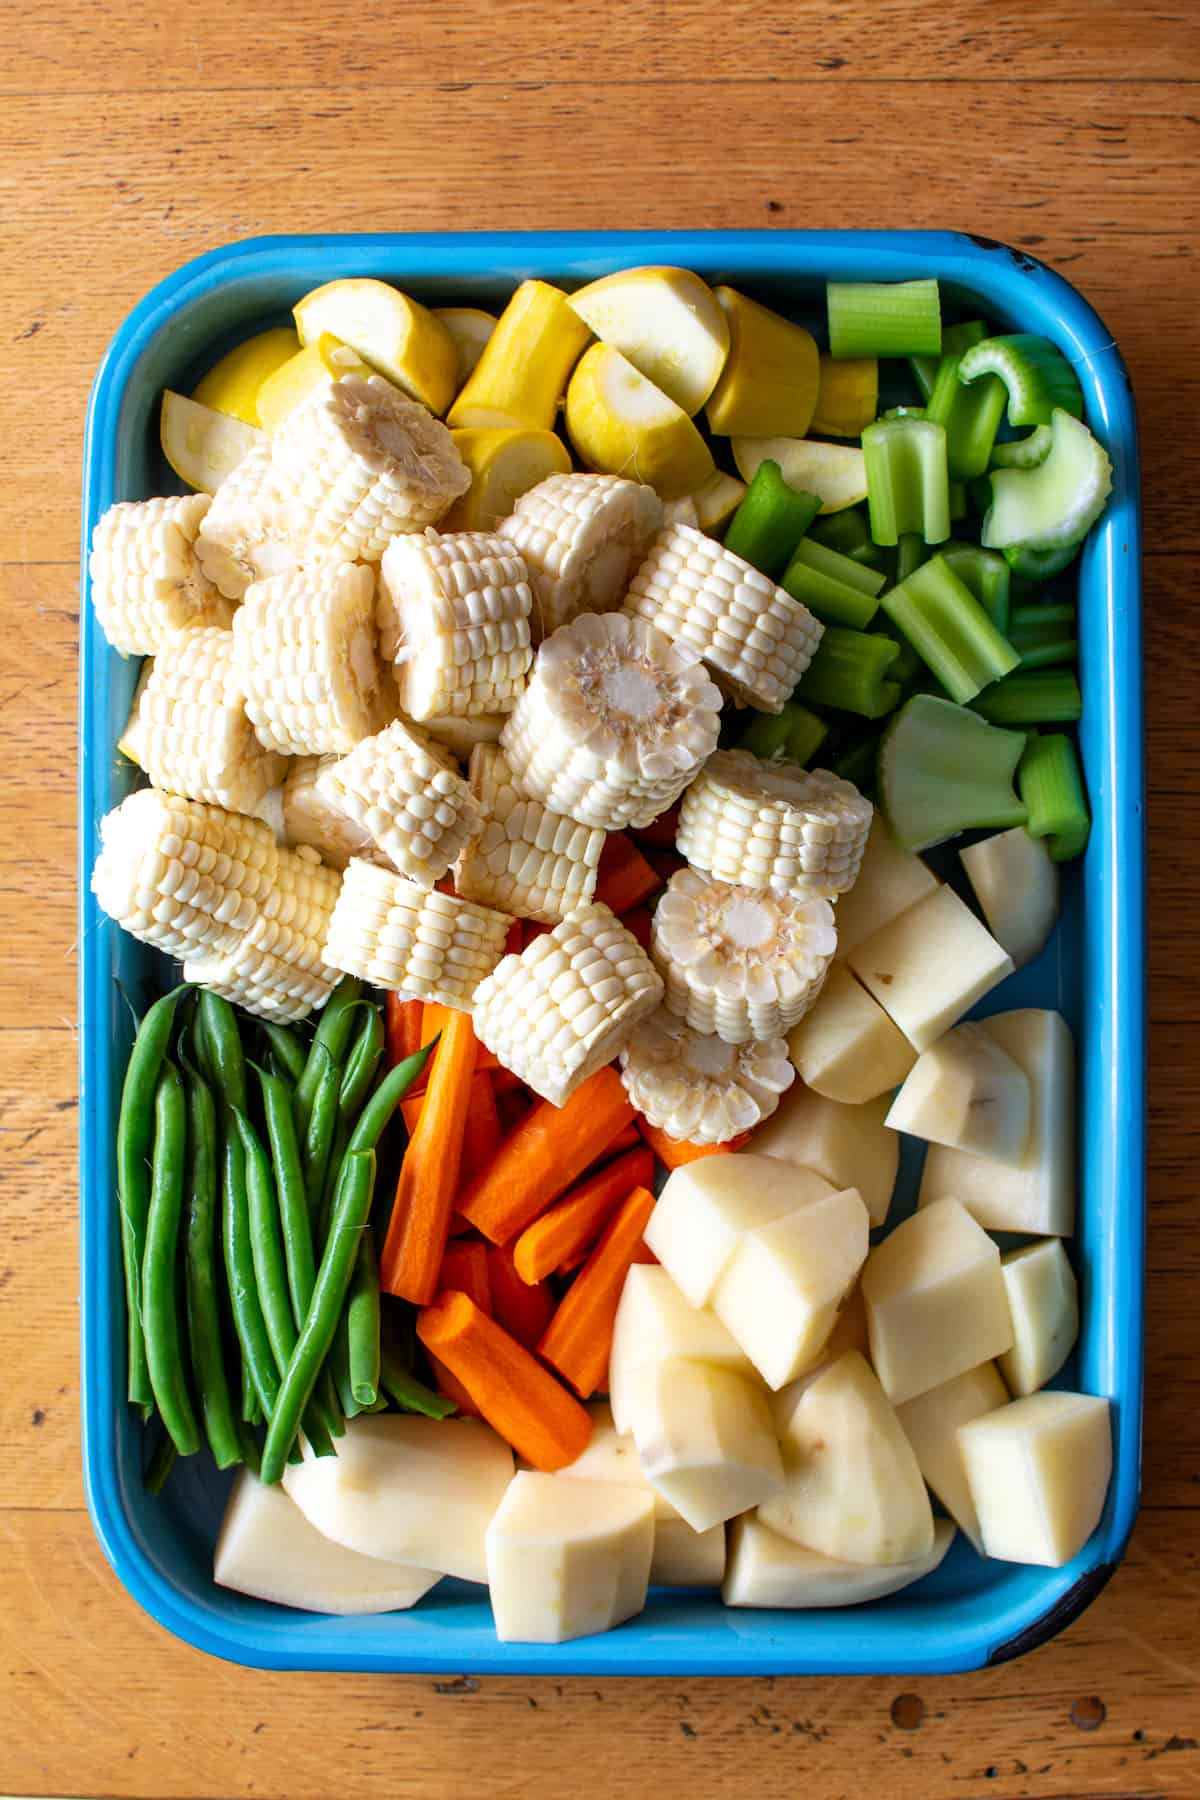 A blue pan filled with vegetables for the Caldo de Res, potatoes, carrots, green beans, corn, celery, and yellow squash all cut into chunks.